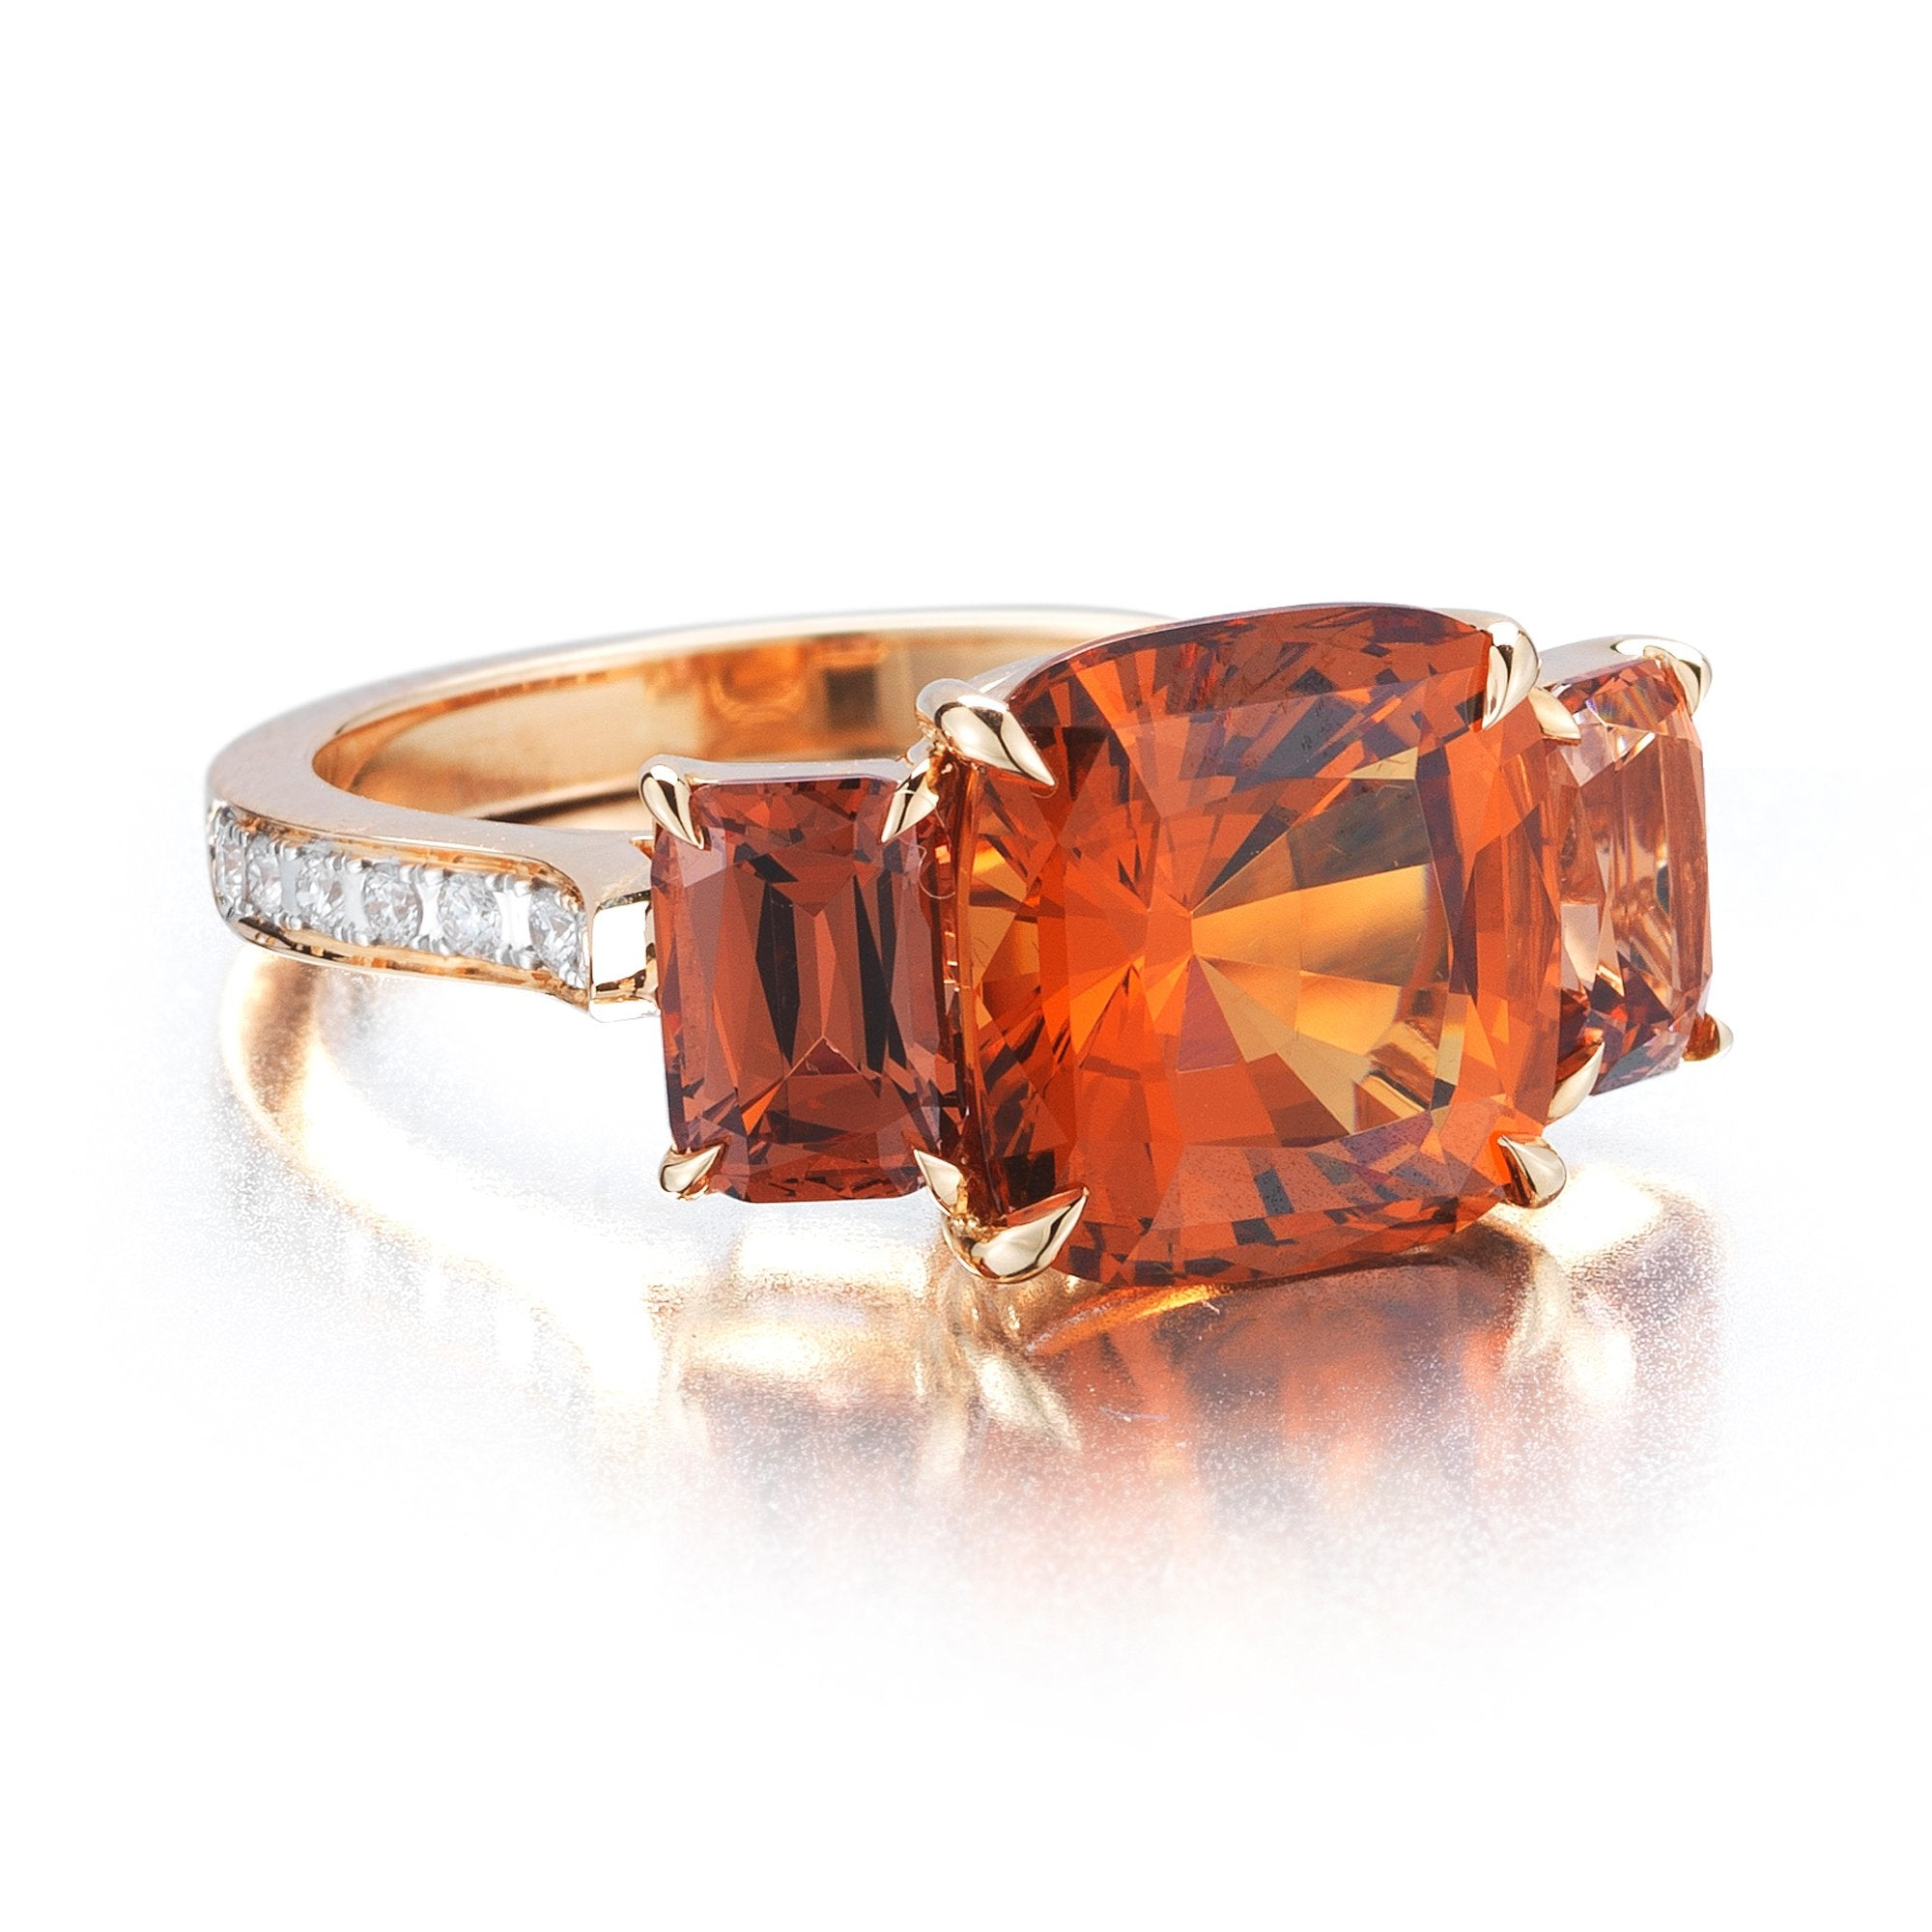 Hessonite Garnet and Malaya Garnet Ring